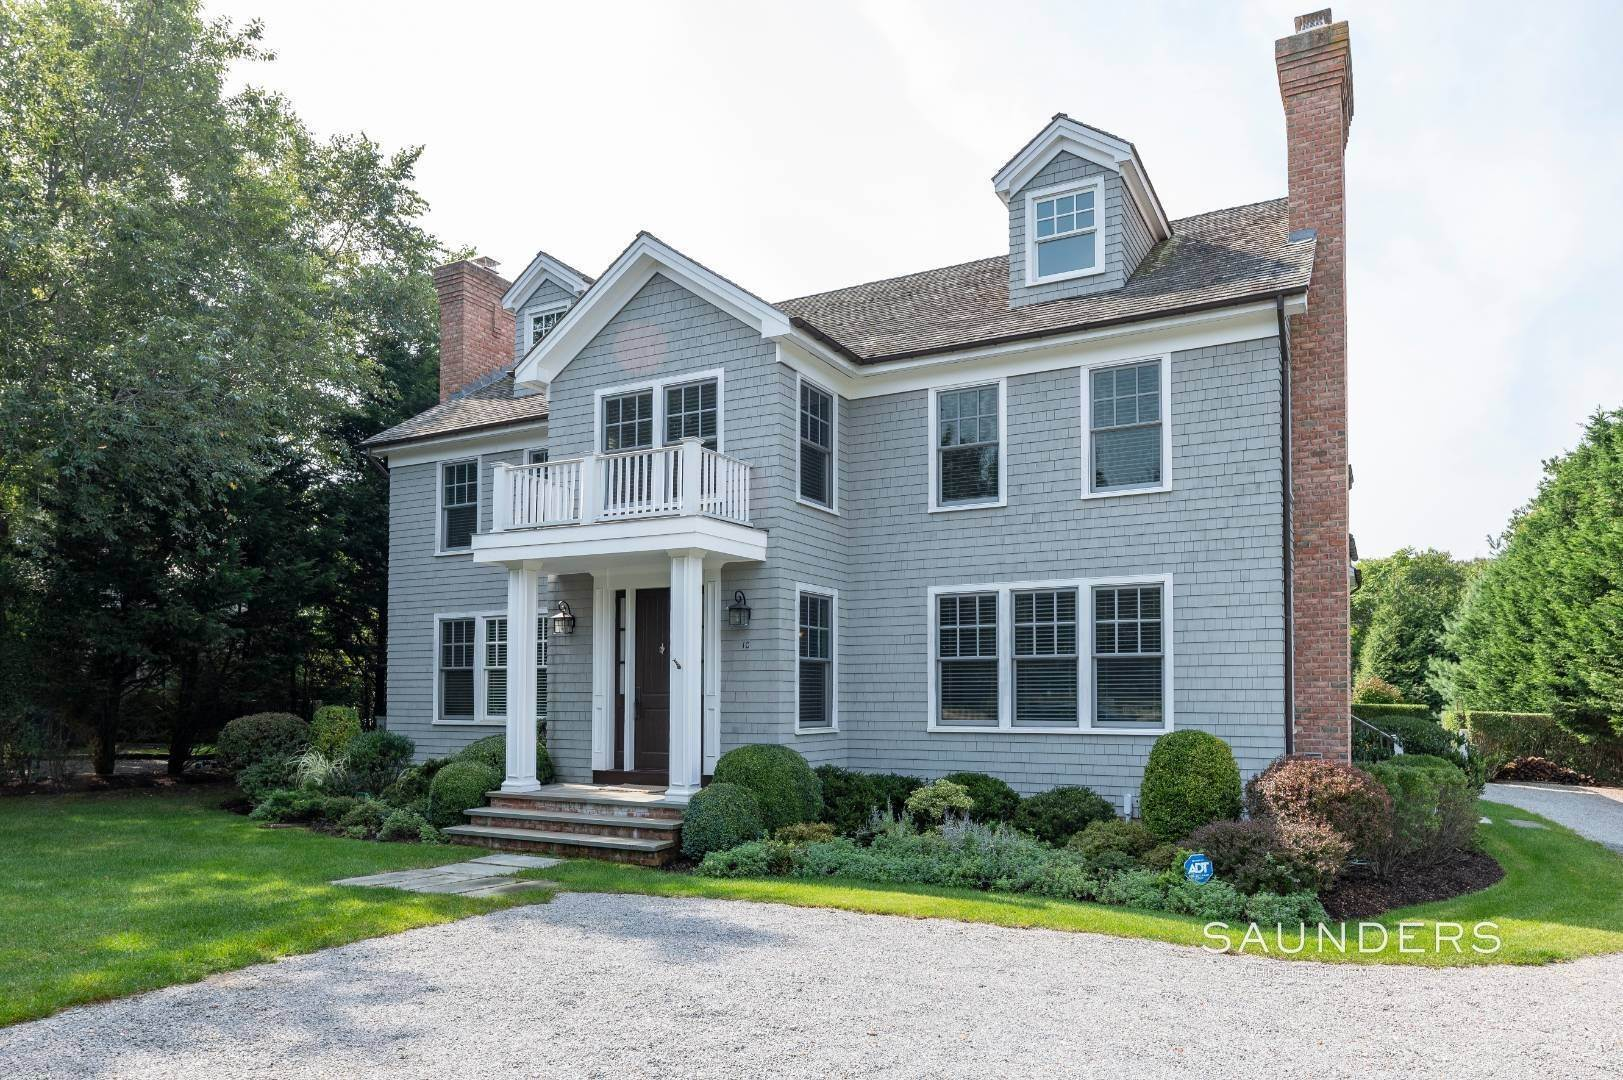 Single Family Homes for Sale at Modern Rendition Of A Federal Colonial Bordering A Reserve 10 Montauk Avenue Ext, Sag Harbor, Southampton Town, NY 11963